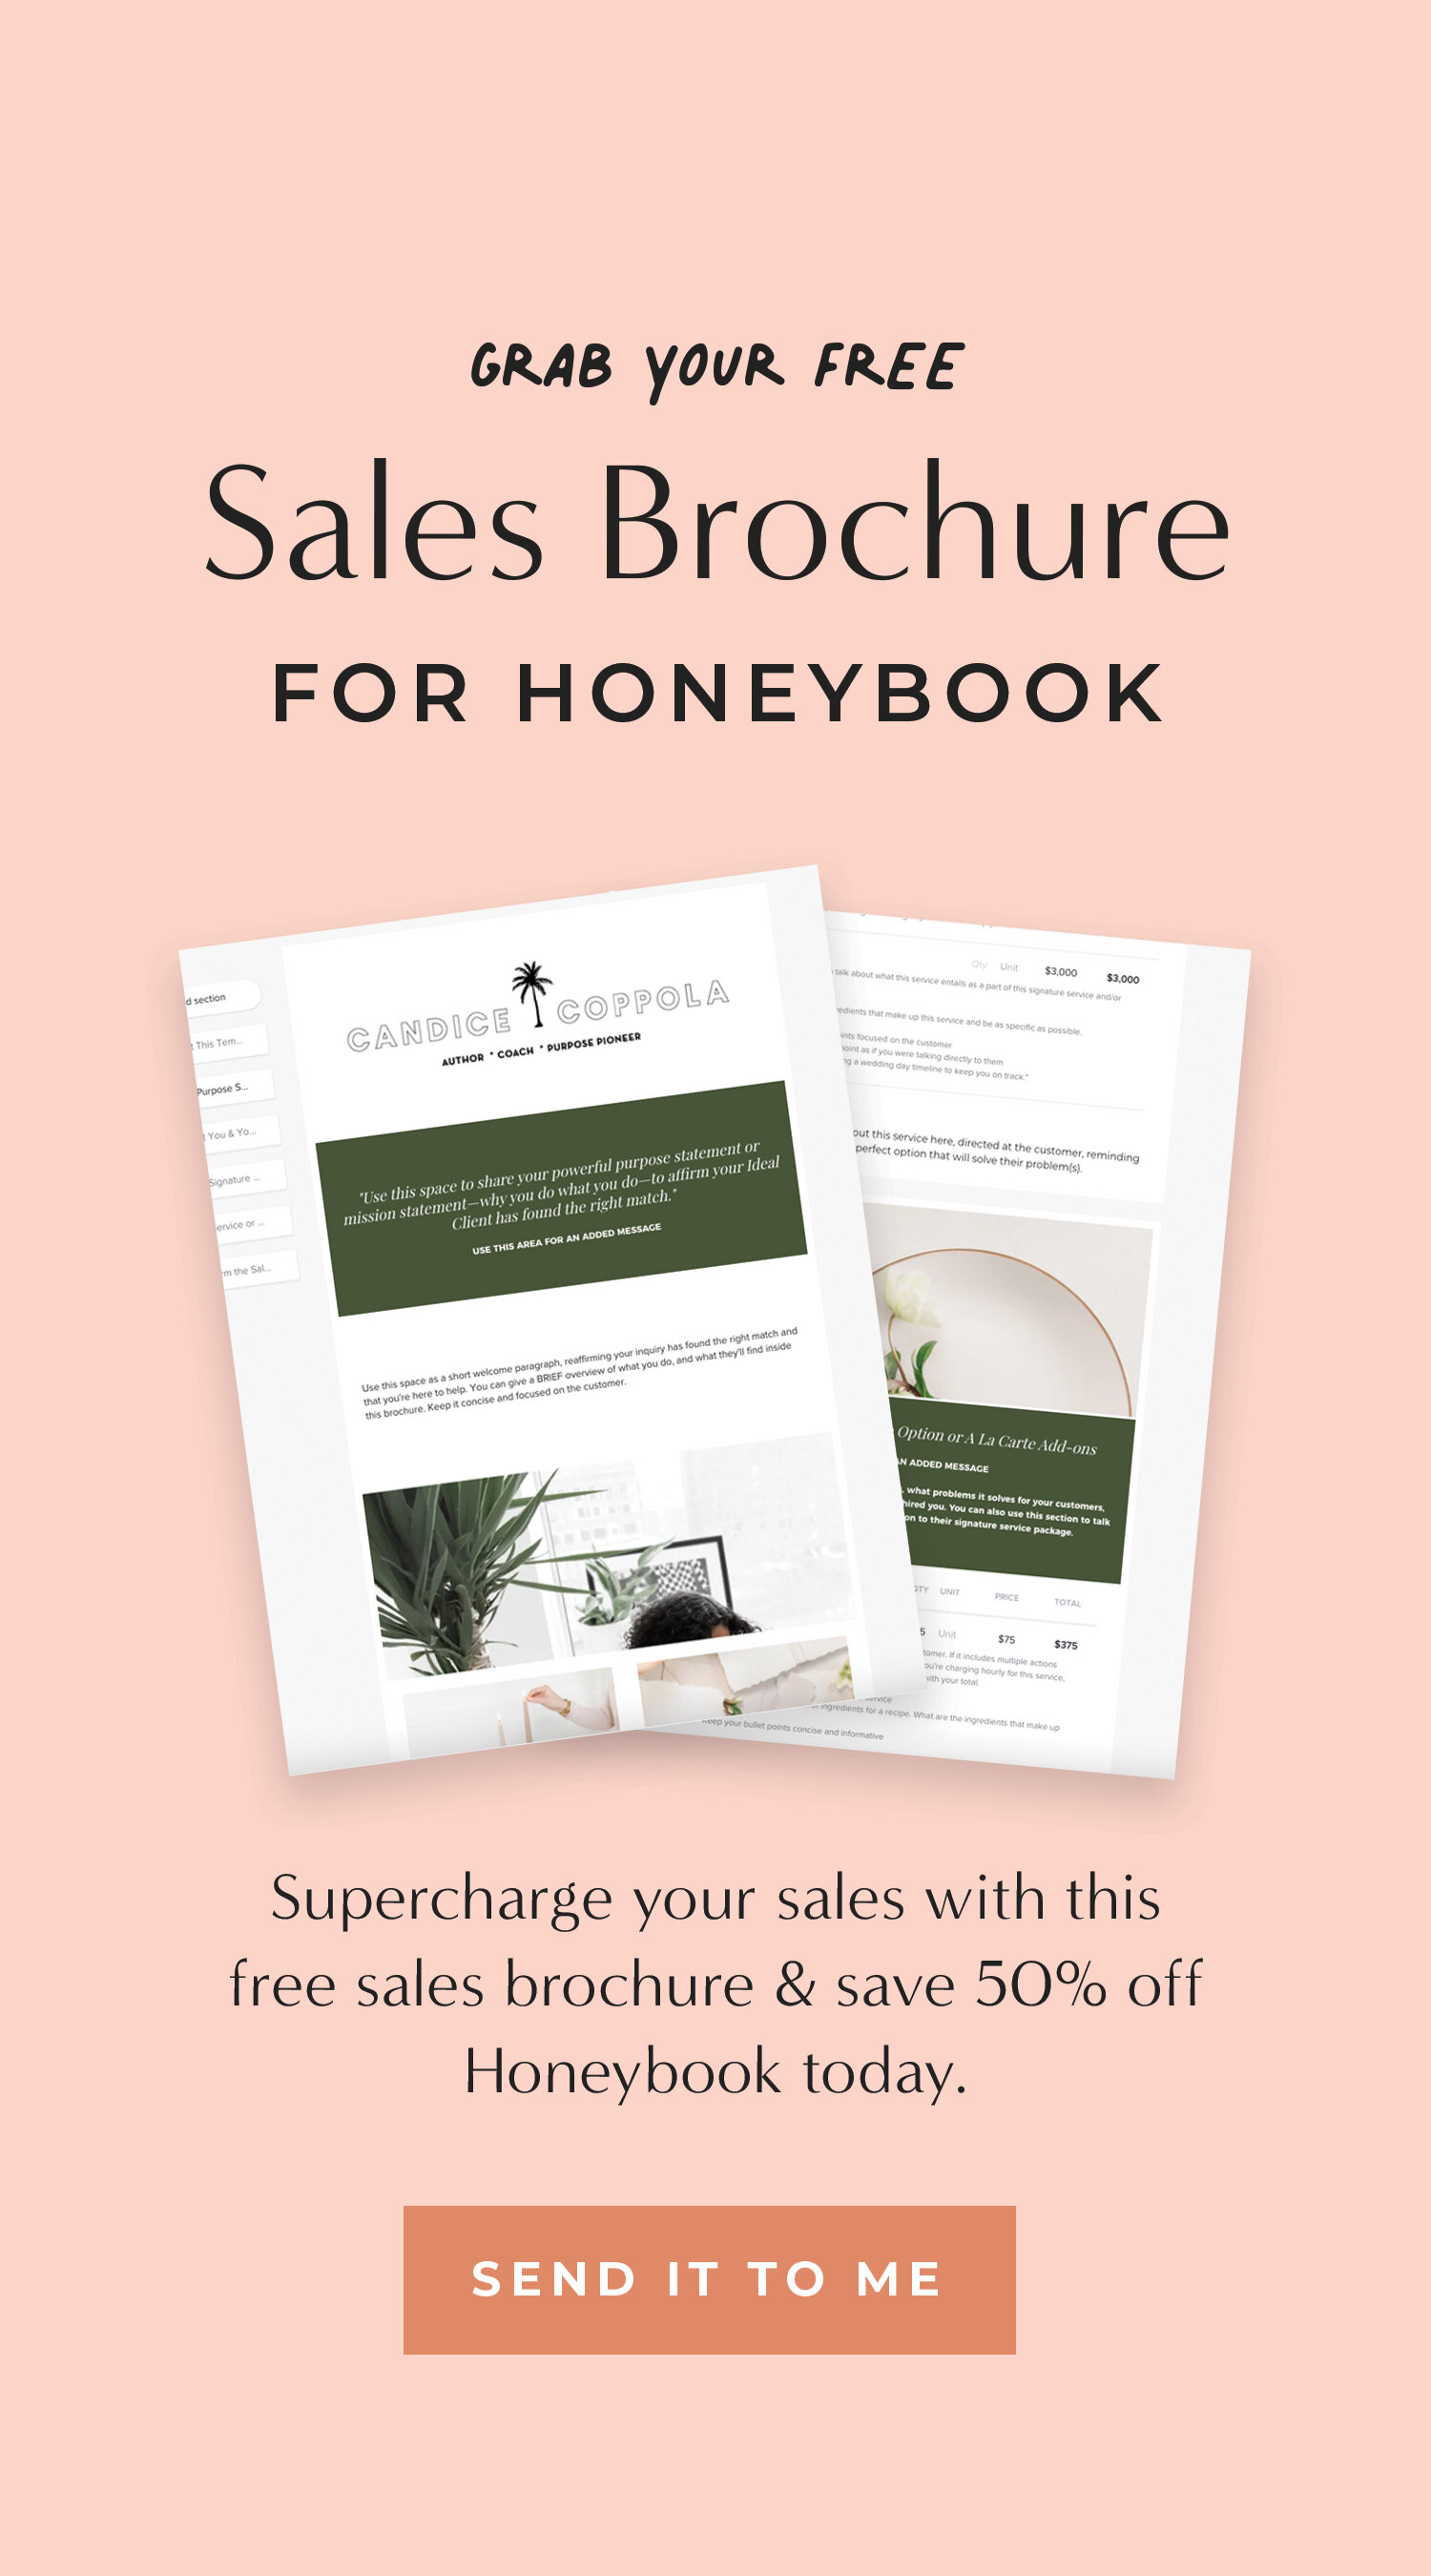 Honeybook promo code! Honeybook is a client management systems that lets you automate your sales process. Use this 50% off code to receive $200 off your first year of Honeybook. Sign up for a trial below using the link and when you're ready, you'll automatically get 50% off!